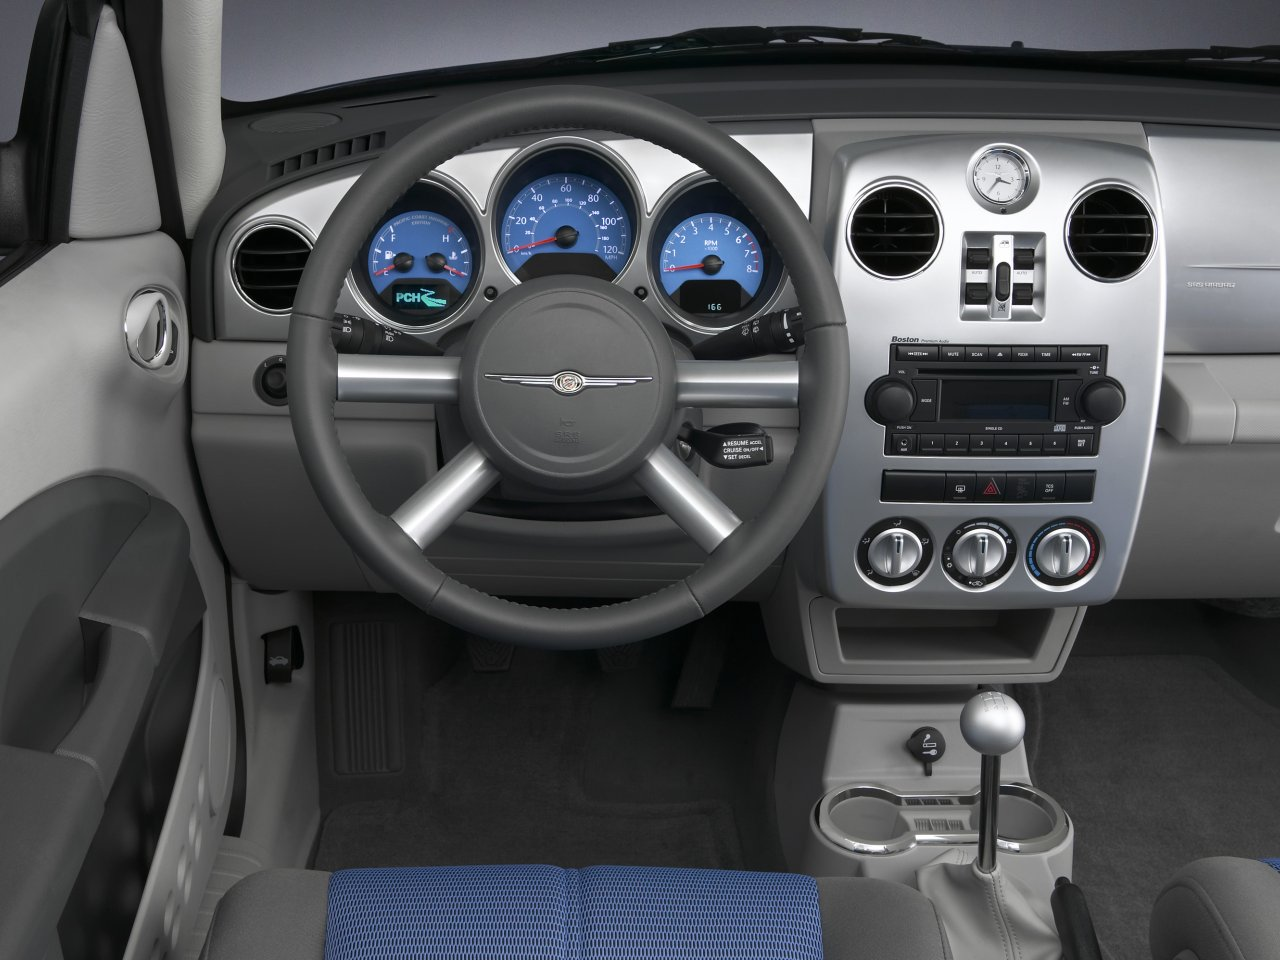 Chrysler Pt Cruiser Convertible Interior